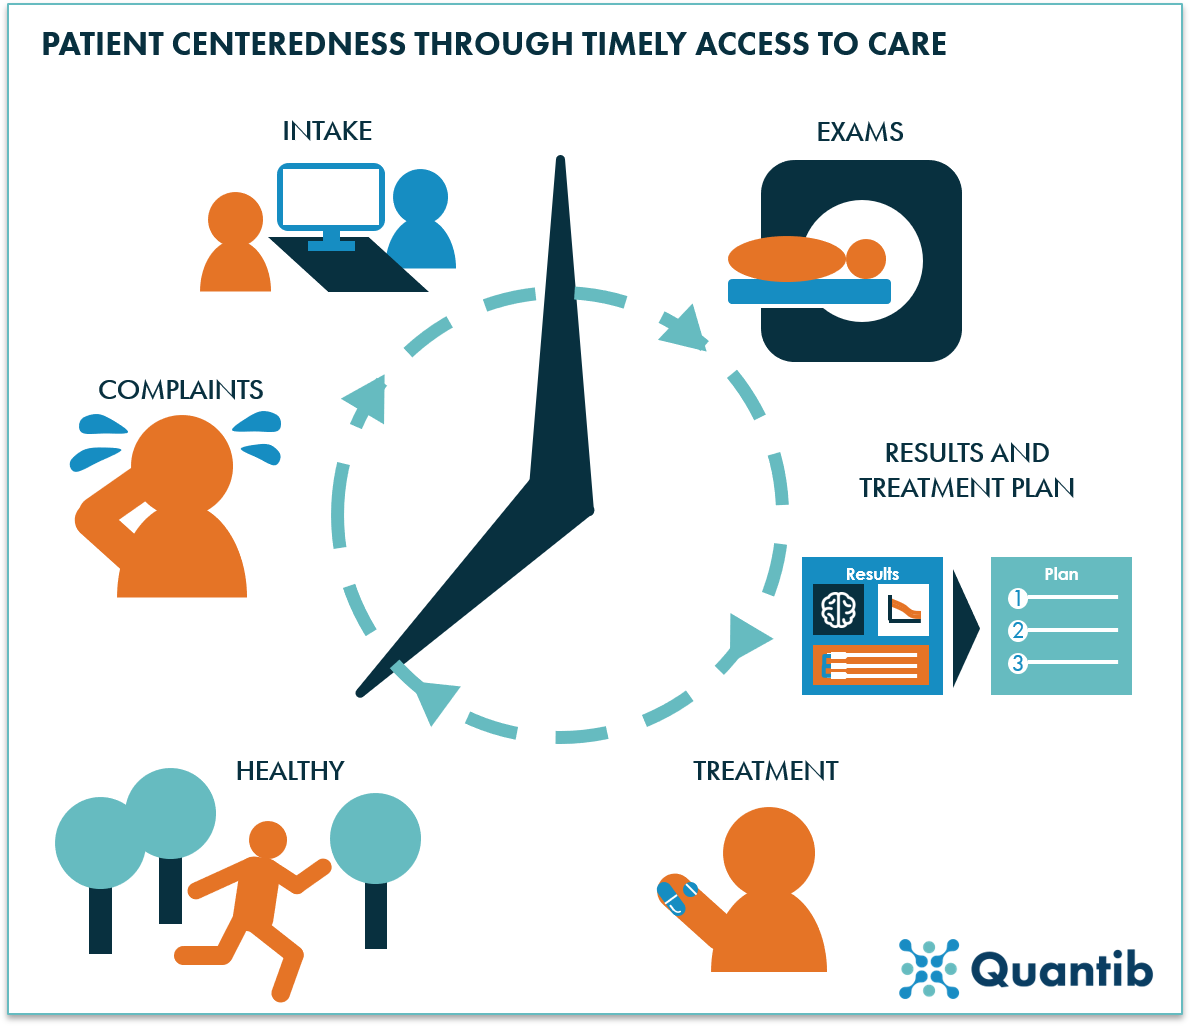 schematic figure of patient centered healthcare through timely access to care